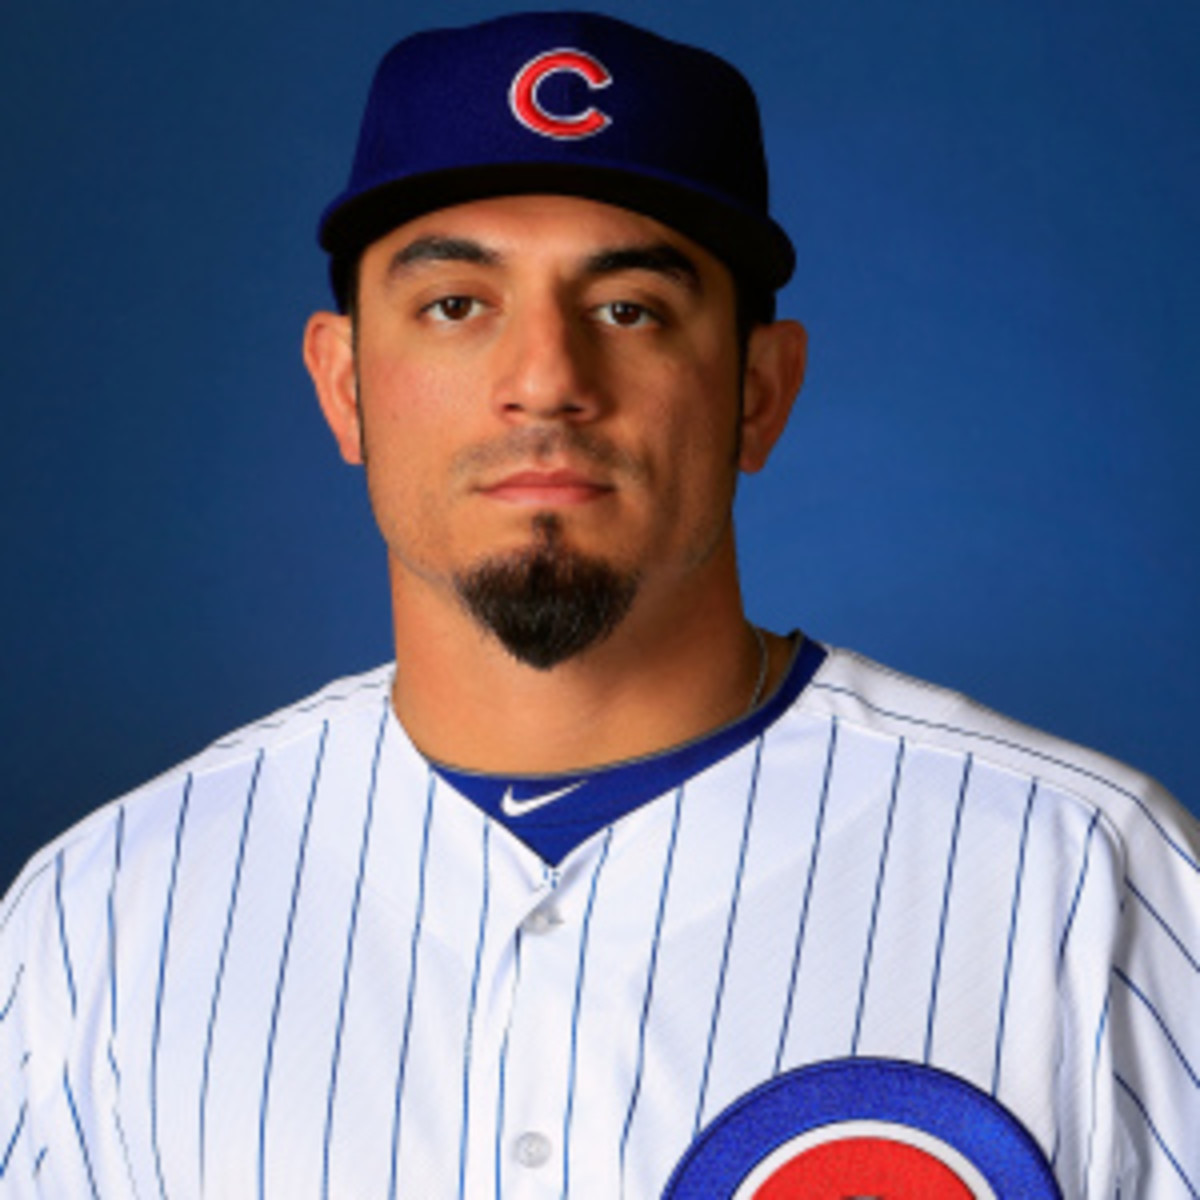 Matt Garza will be sidelined for a week but the Cubs are optimistic he will be available for opening day in April. (Jamie Squire/Getty Images)